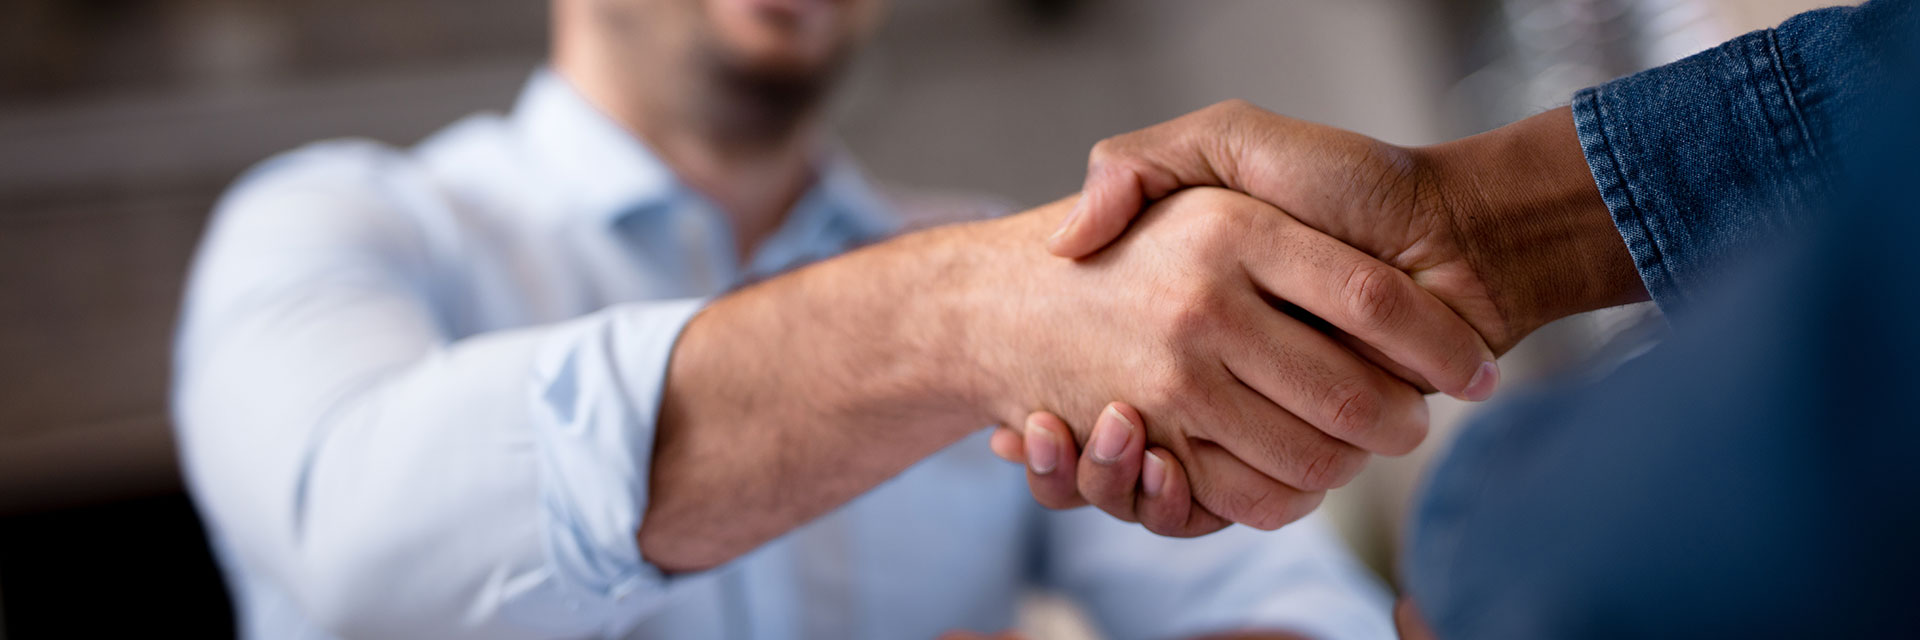 Insurance agent shaking hands with a customer